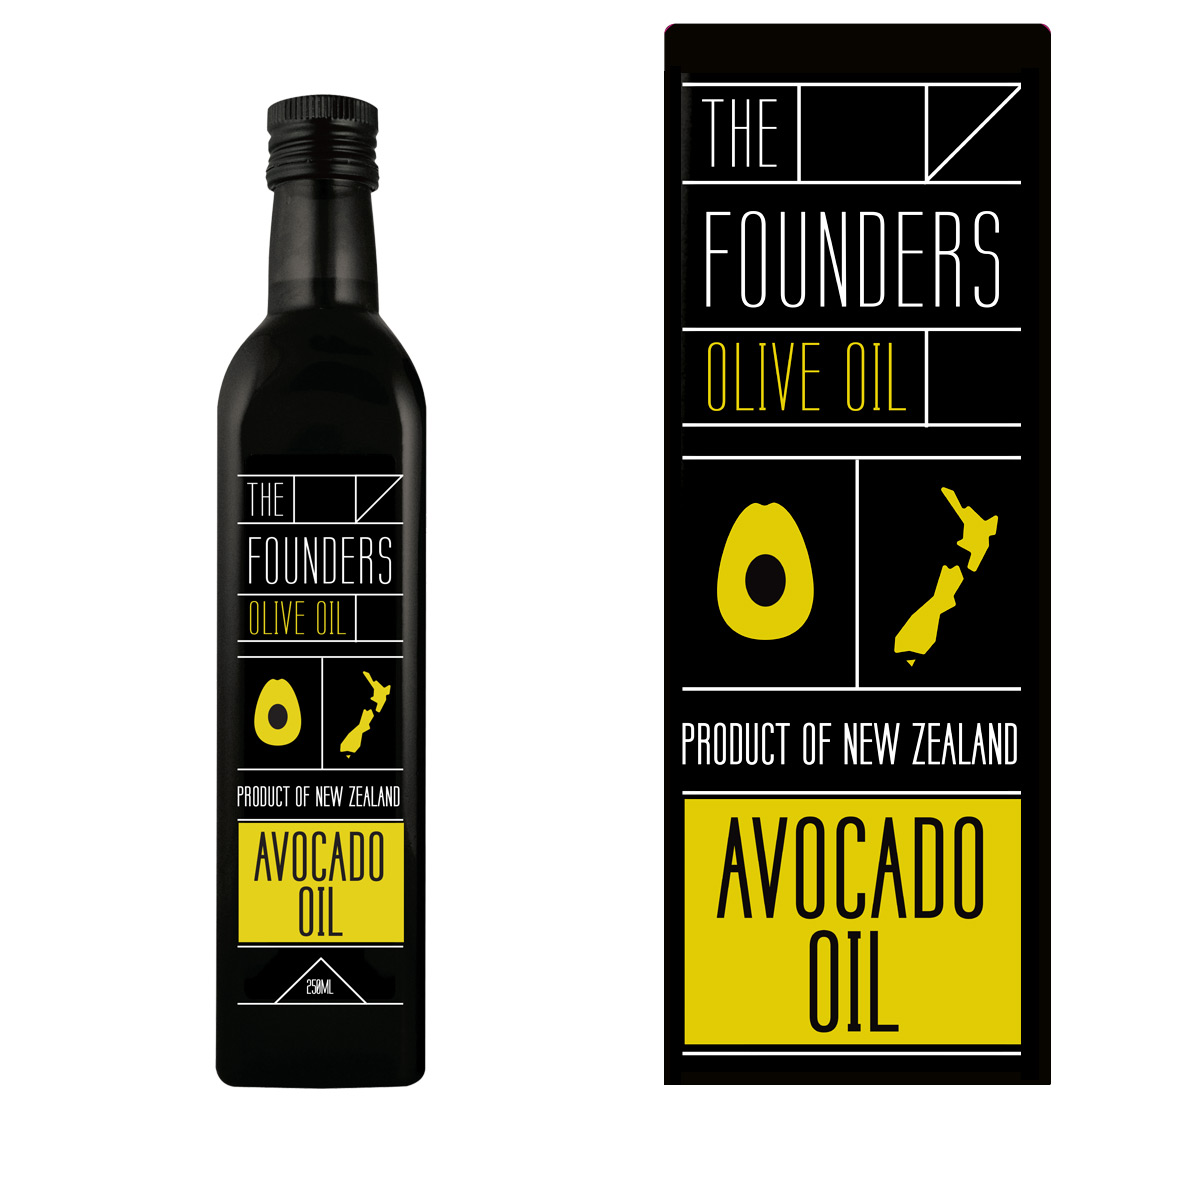 The-Founders-Olive-Oil-Avocado-250ml-1200×1200